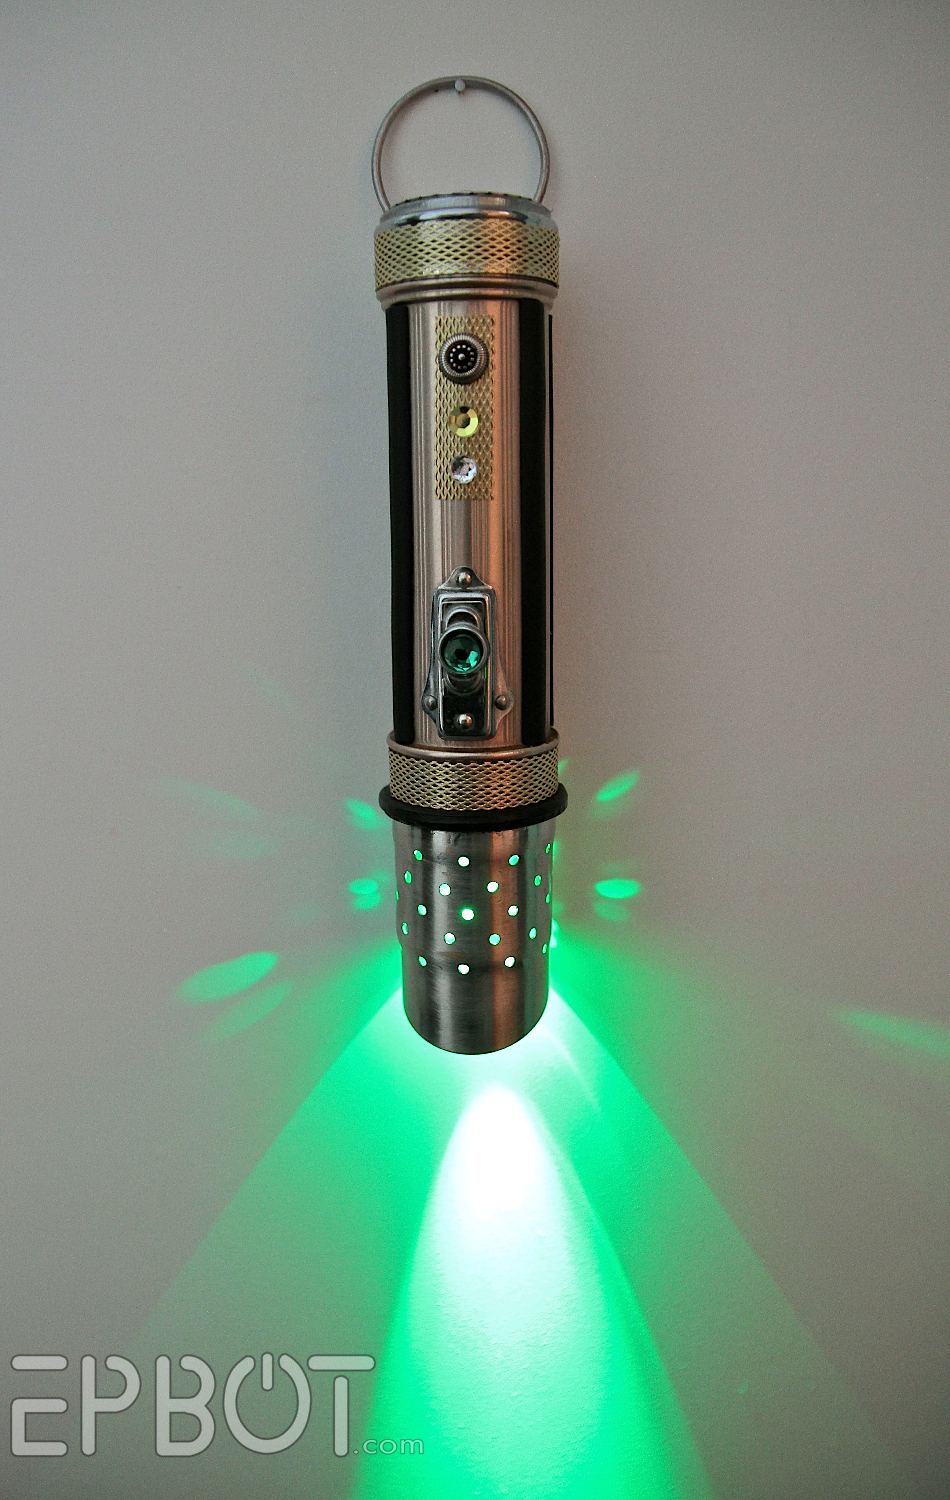 Epbot Diy Steampunk Lightsaber